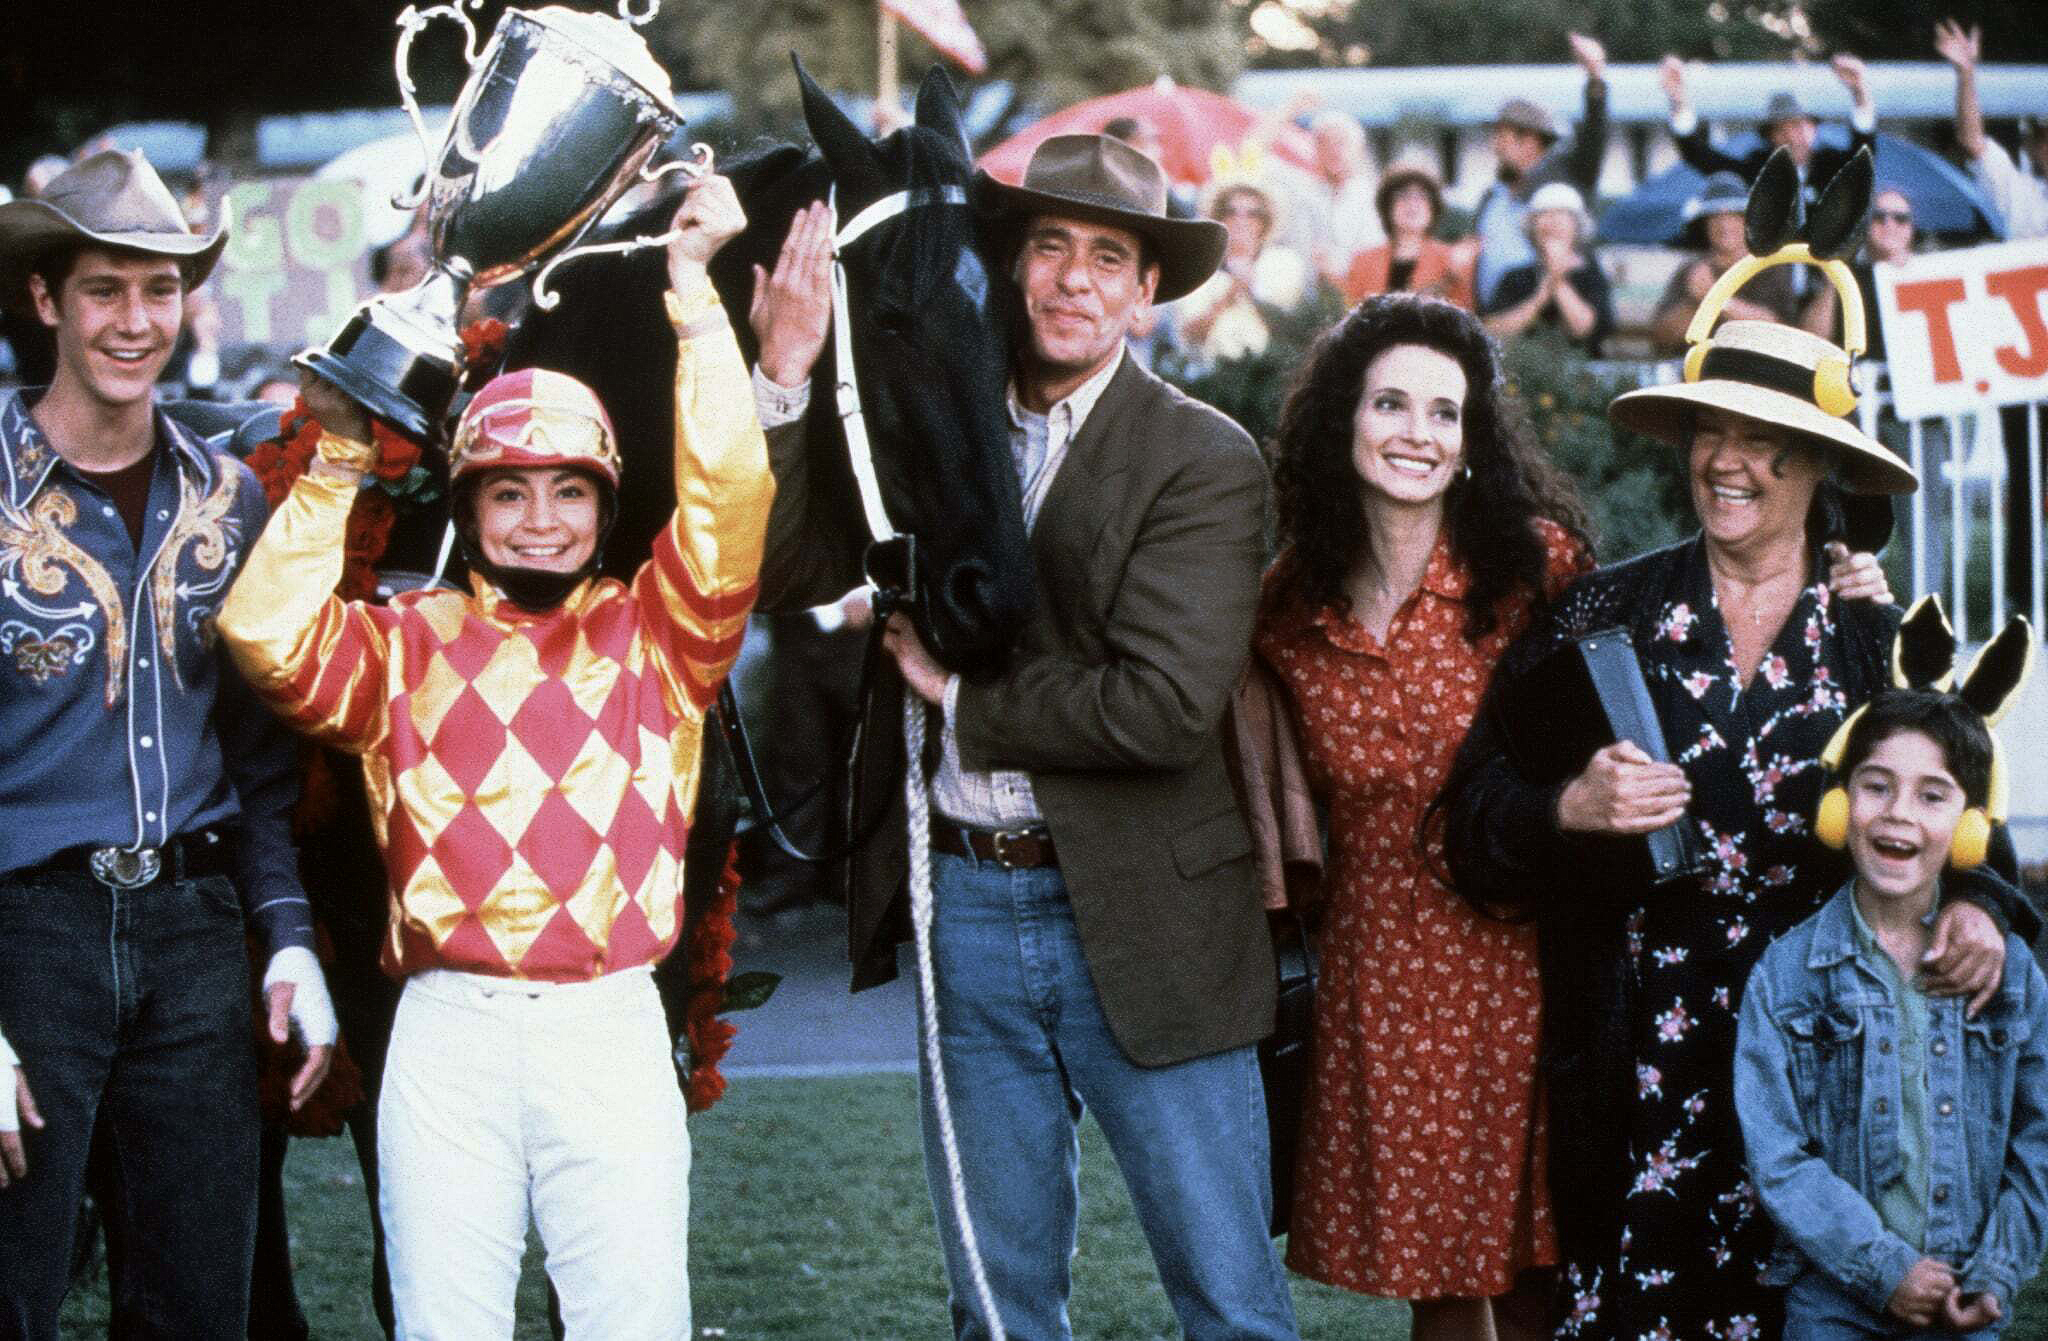 Jockey and her horse with a group of people celebrating a win.